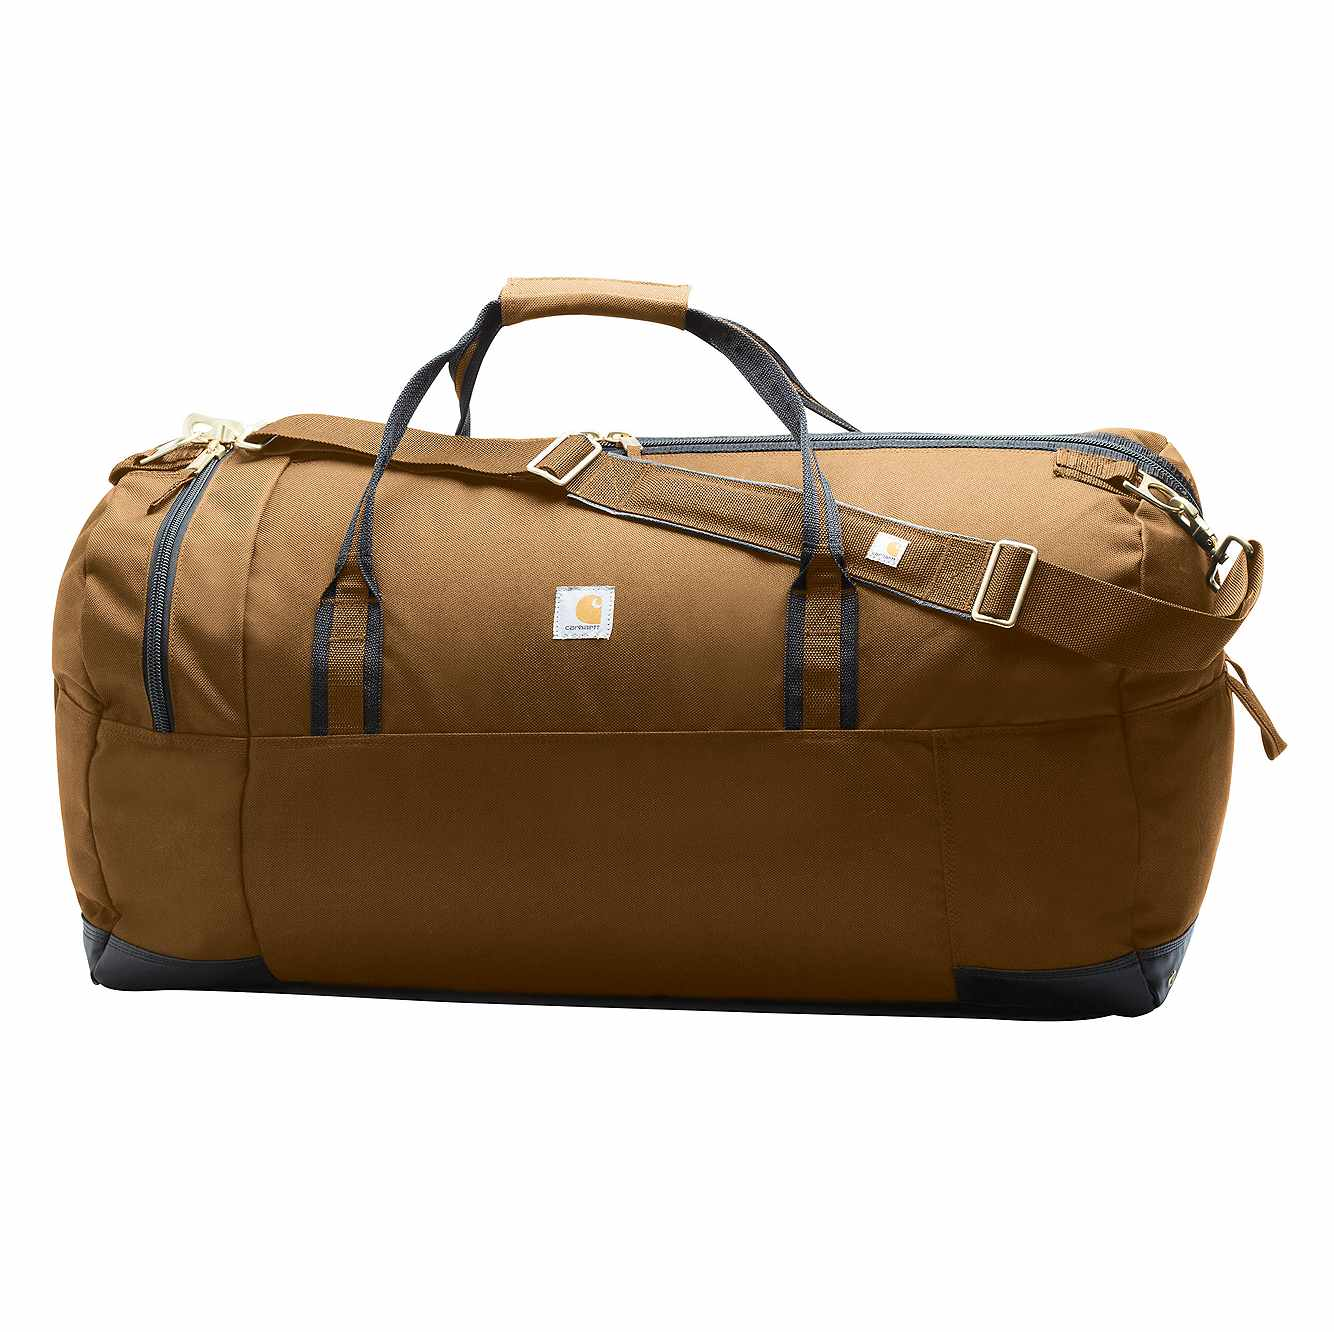 "Picture of Legacy 30"" Gear Bag in Carhartt Brown"